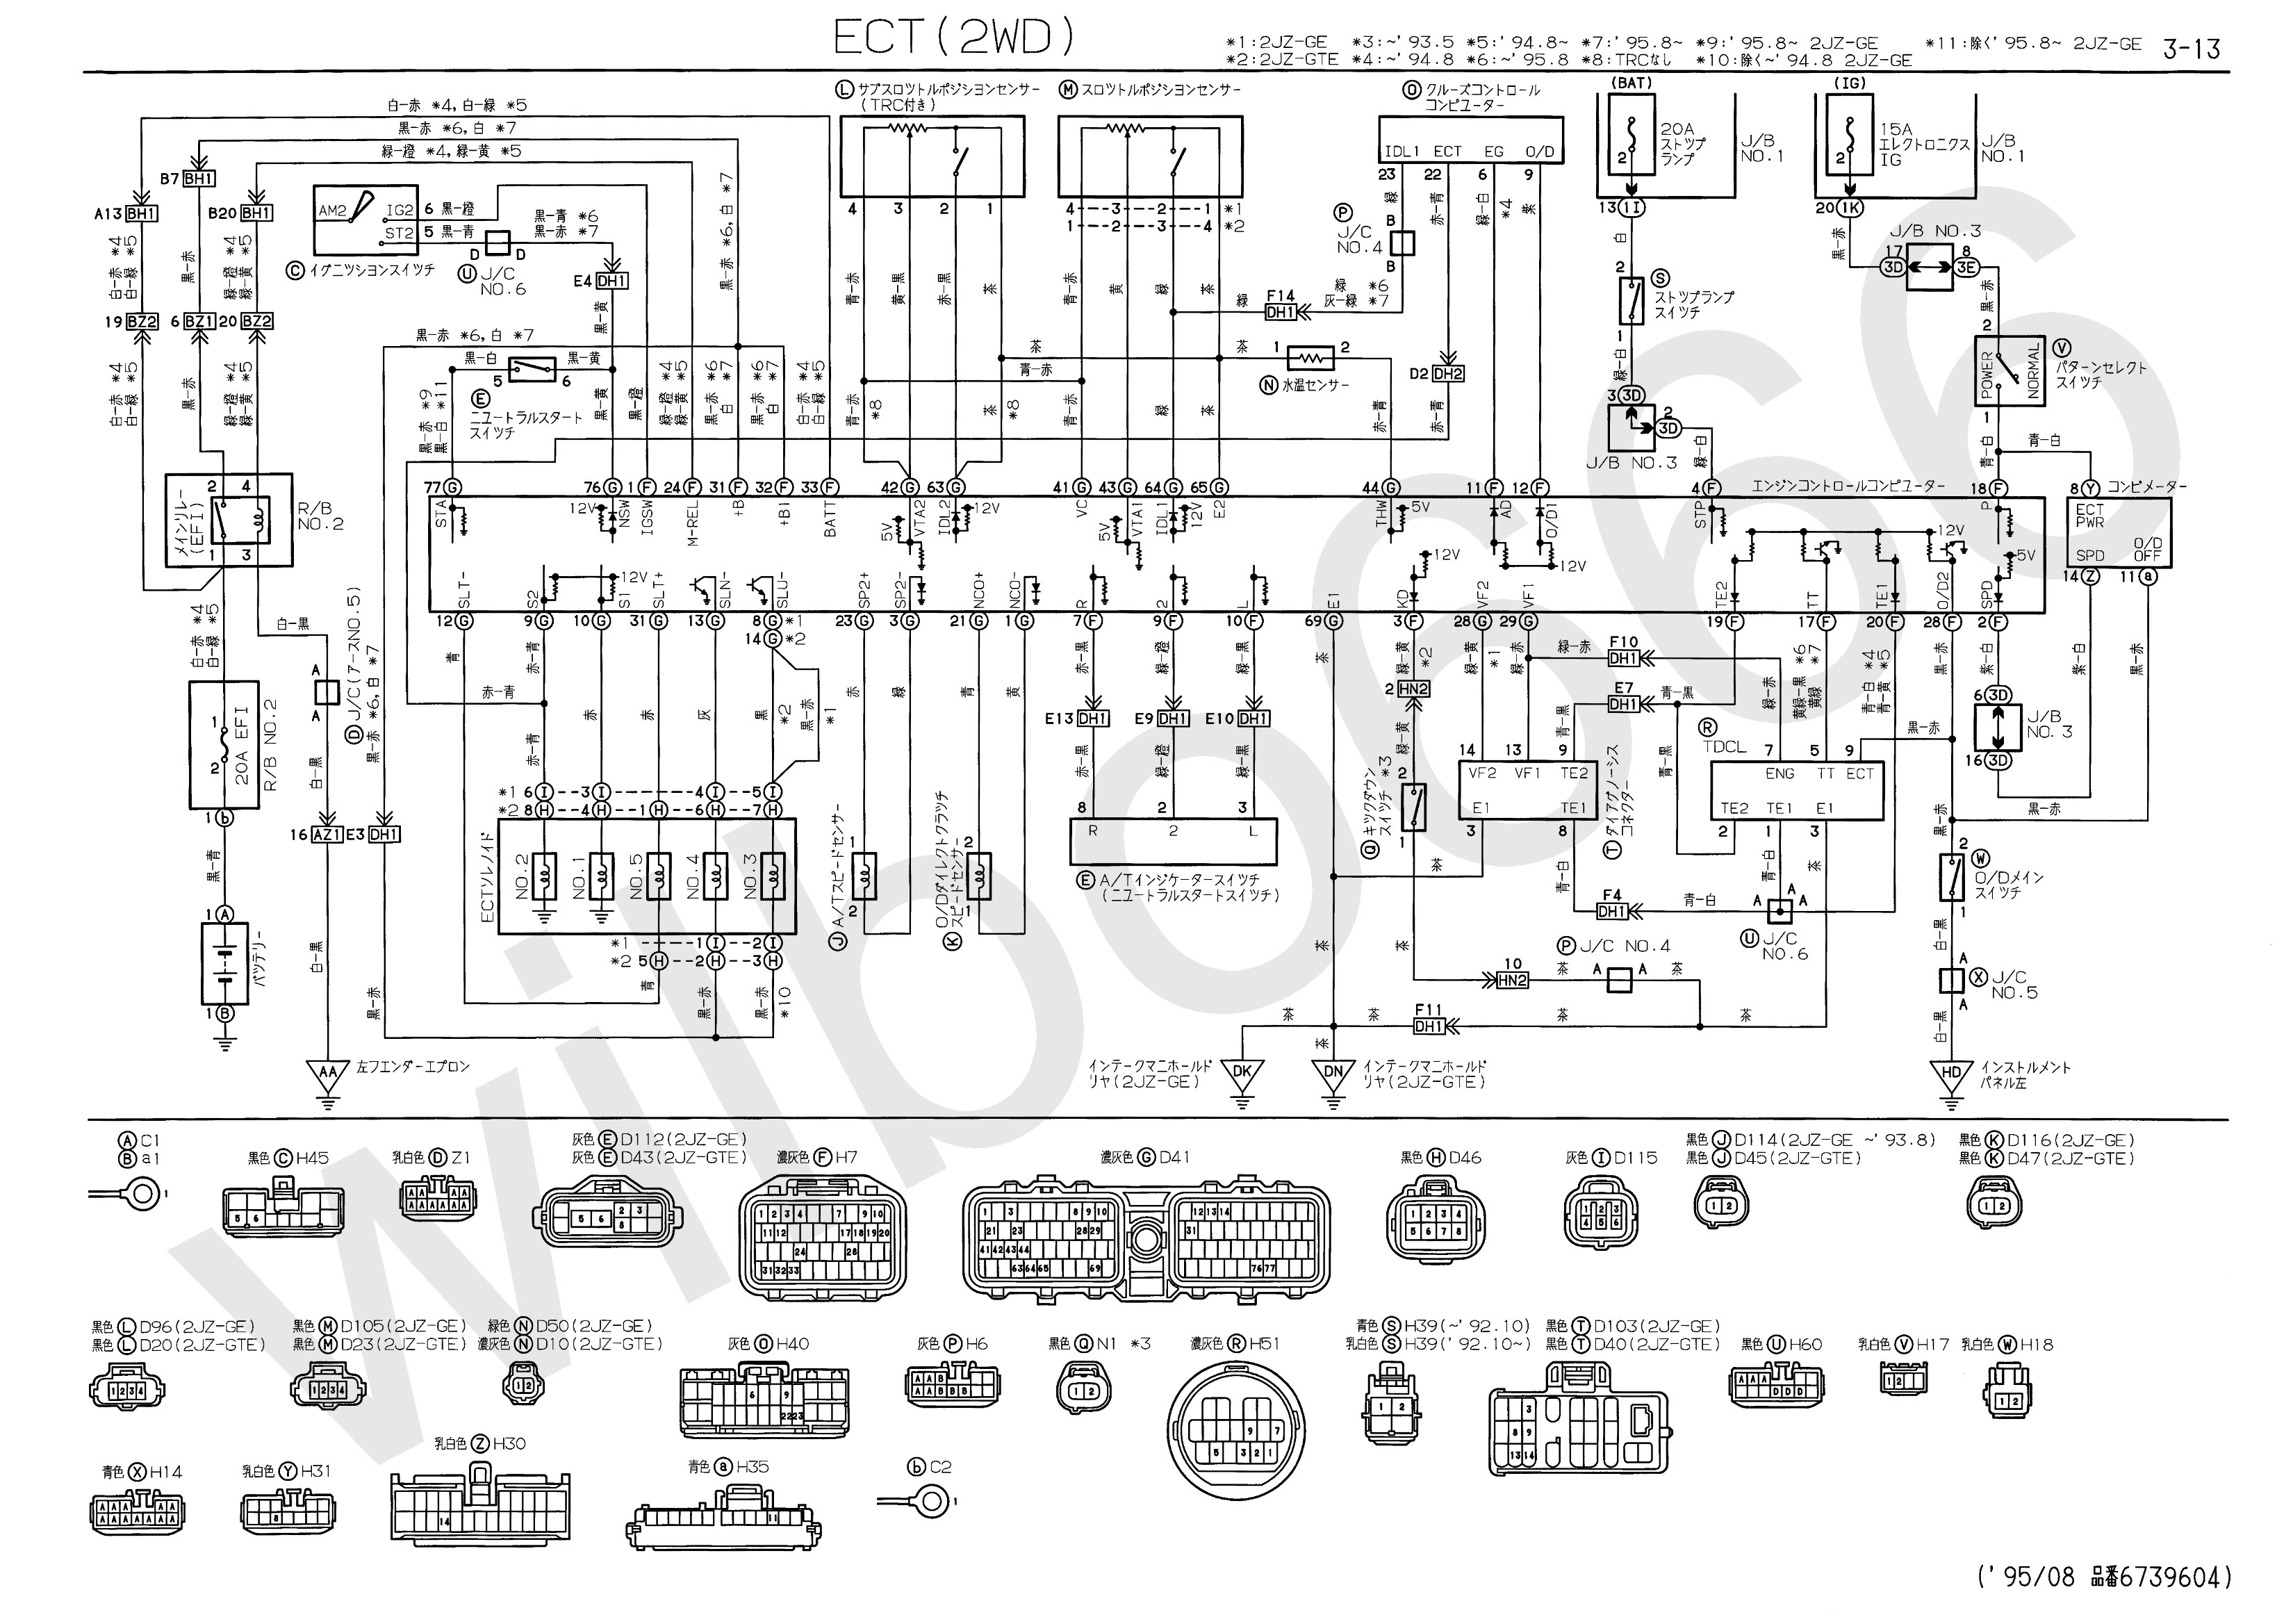 2000 Infiniti G20 Engine Diagram : Xa 4546 2000 Infiniti